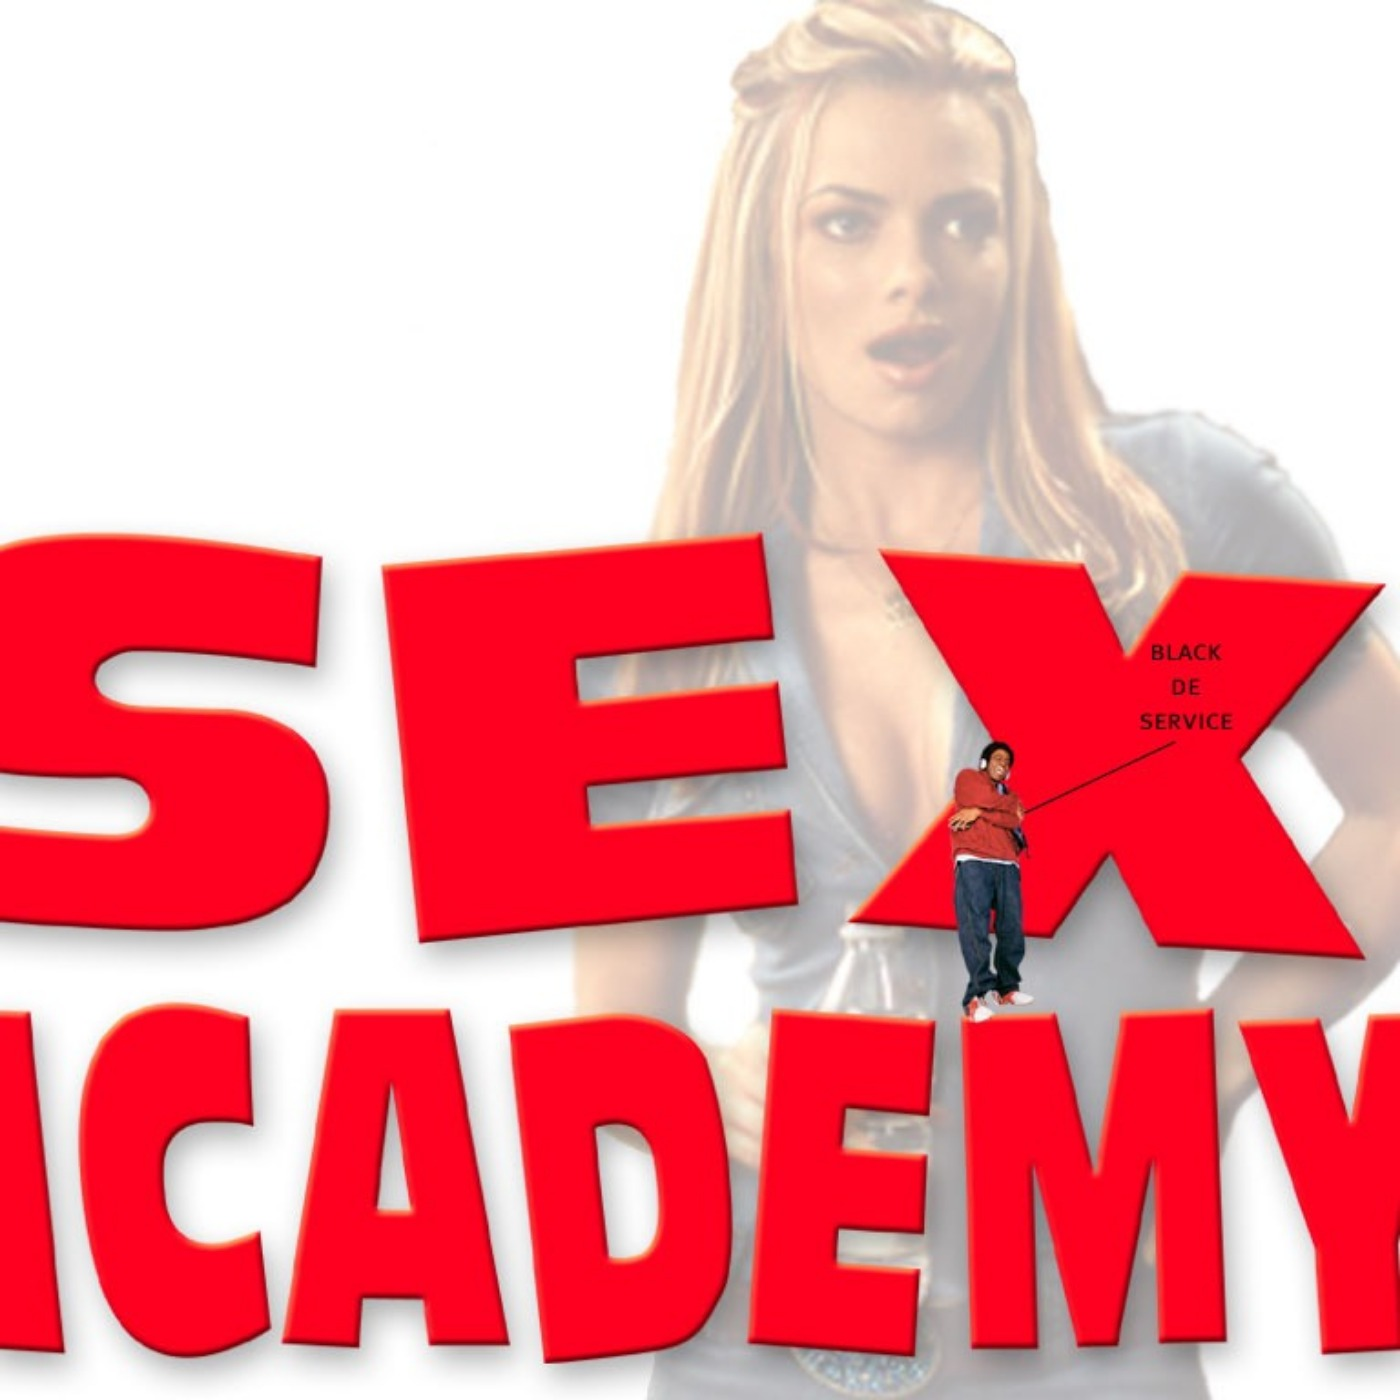 PODCAST CINEMA | CRITIQUE DU FILM Sex Academy - CinéMaRadio